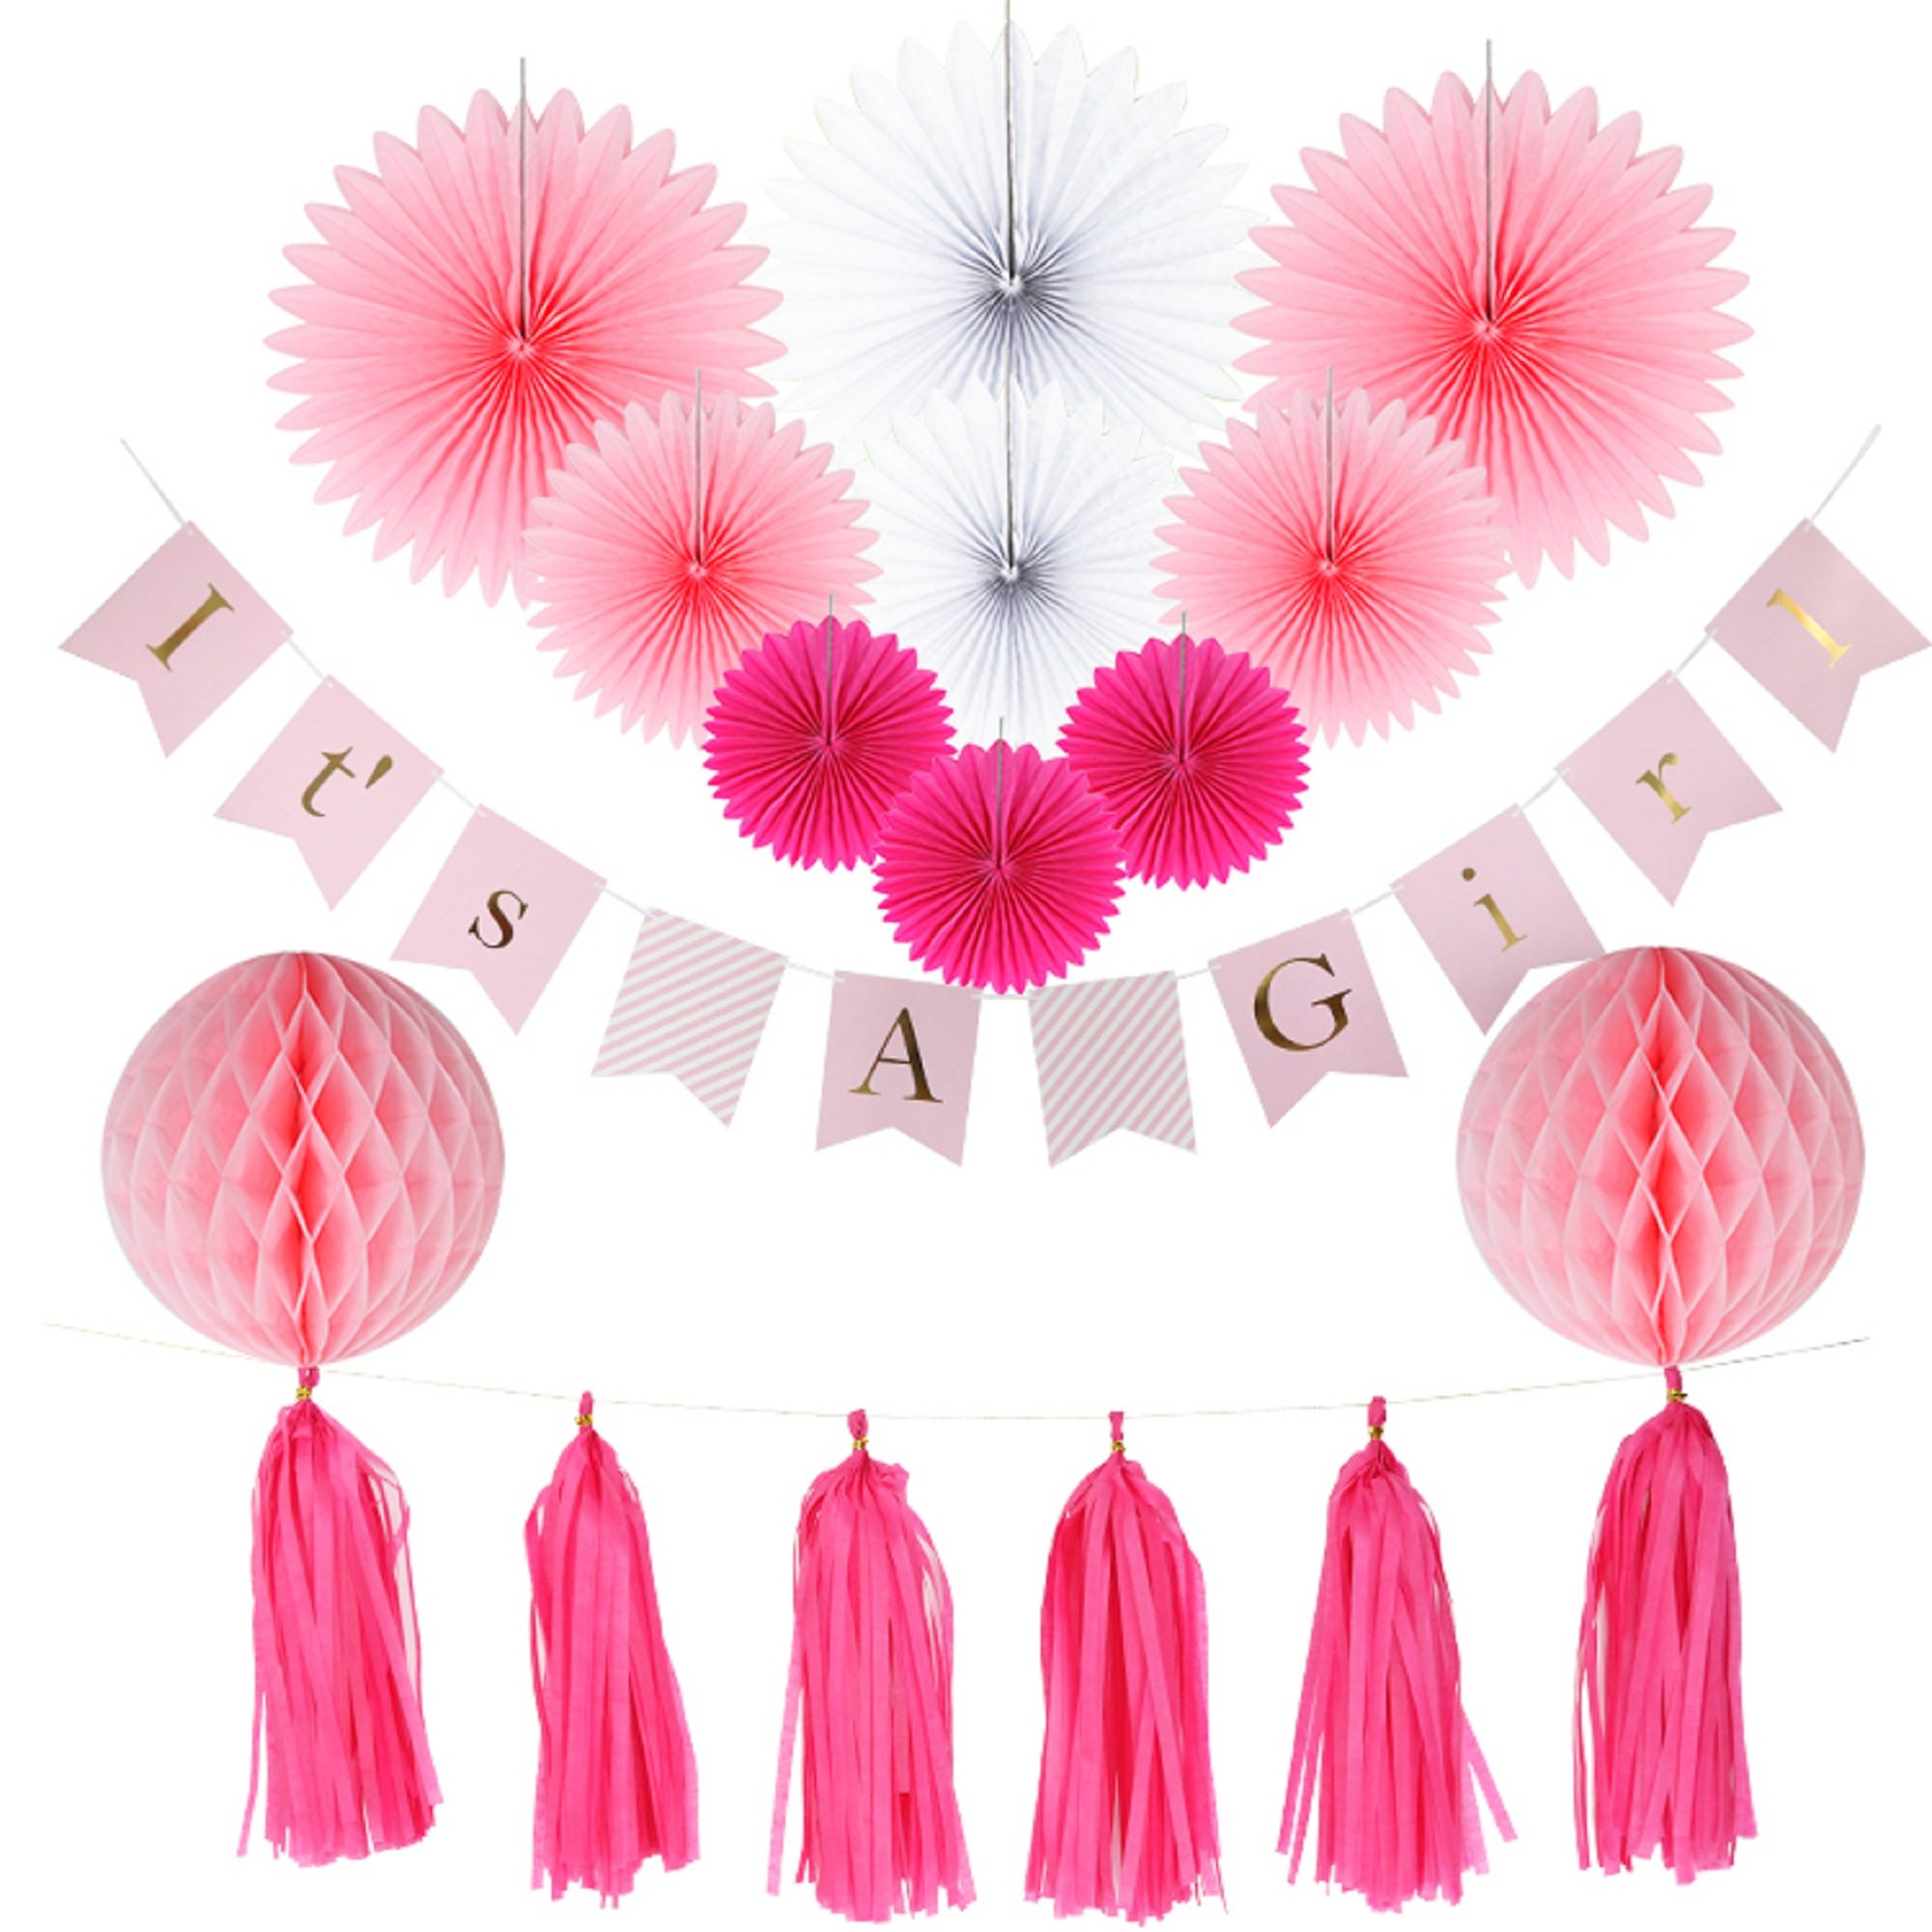 Baby Shower Decorations for Girl, It's A Girl Banner,Pink and Gold Baby Shower Decorations, Tissue Paper, Fans, Honeycomb Paper Balls, Tassels, 18pcs., Hanging ,Party Supplies ,Indoor/Outdoor